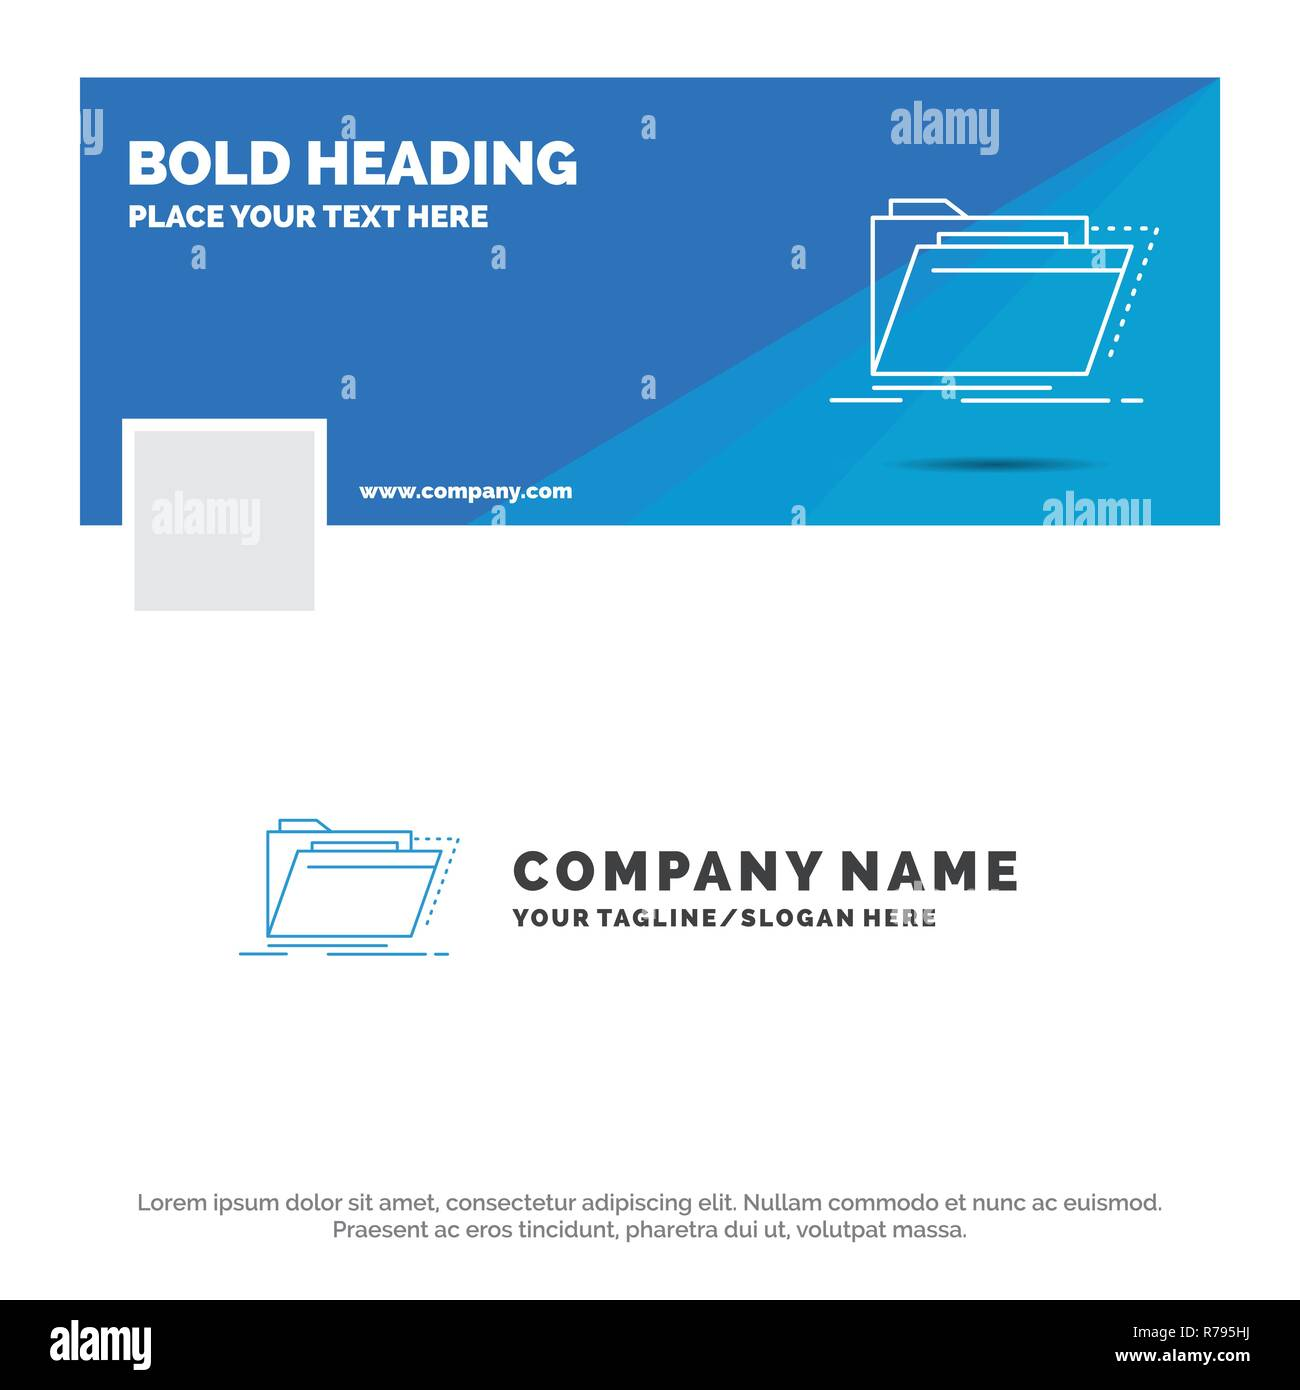 Company Directory Template from c8.alamy.com